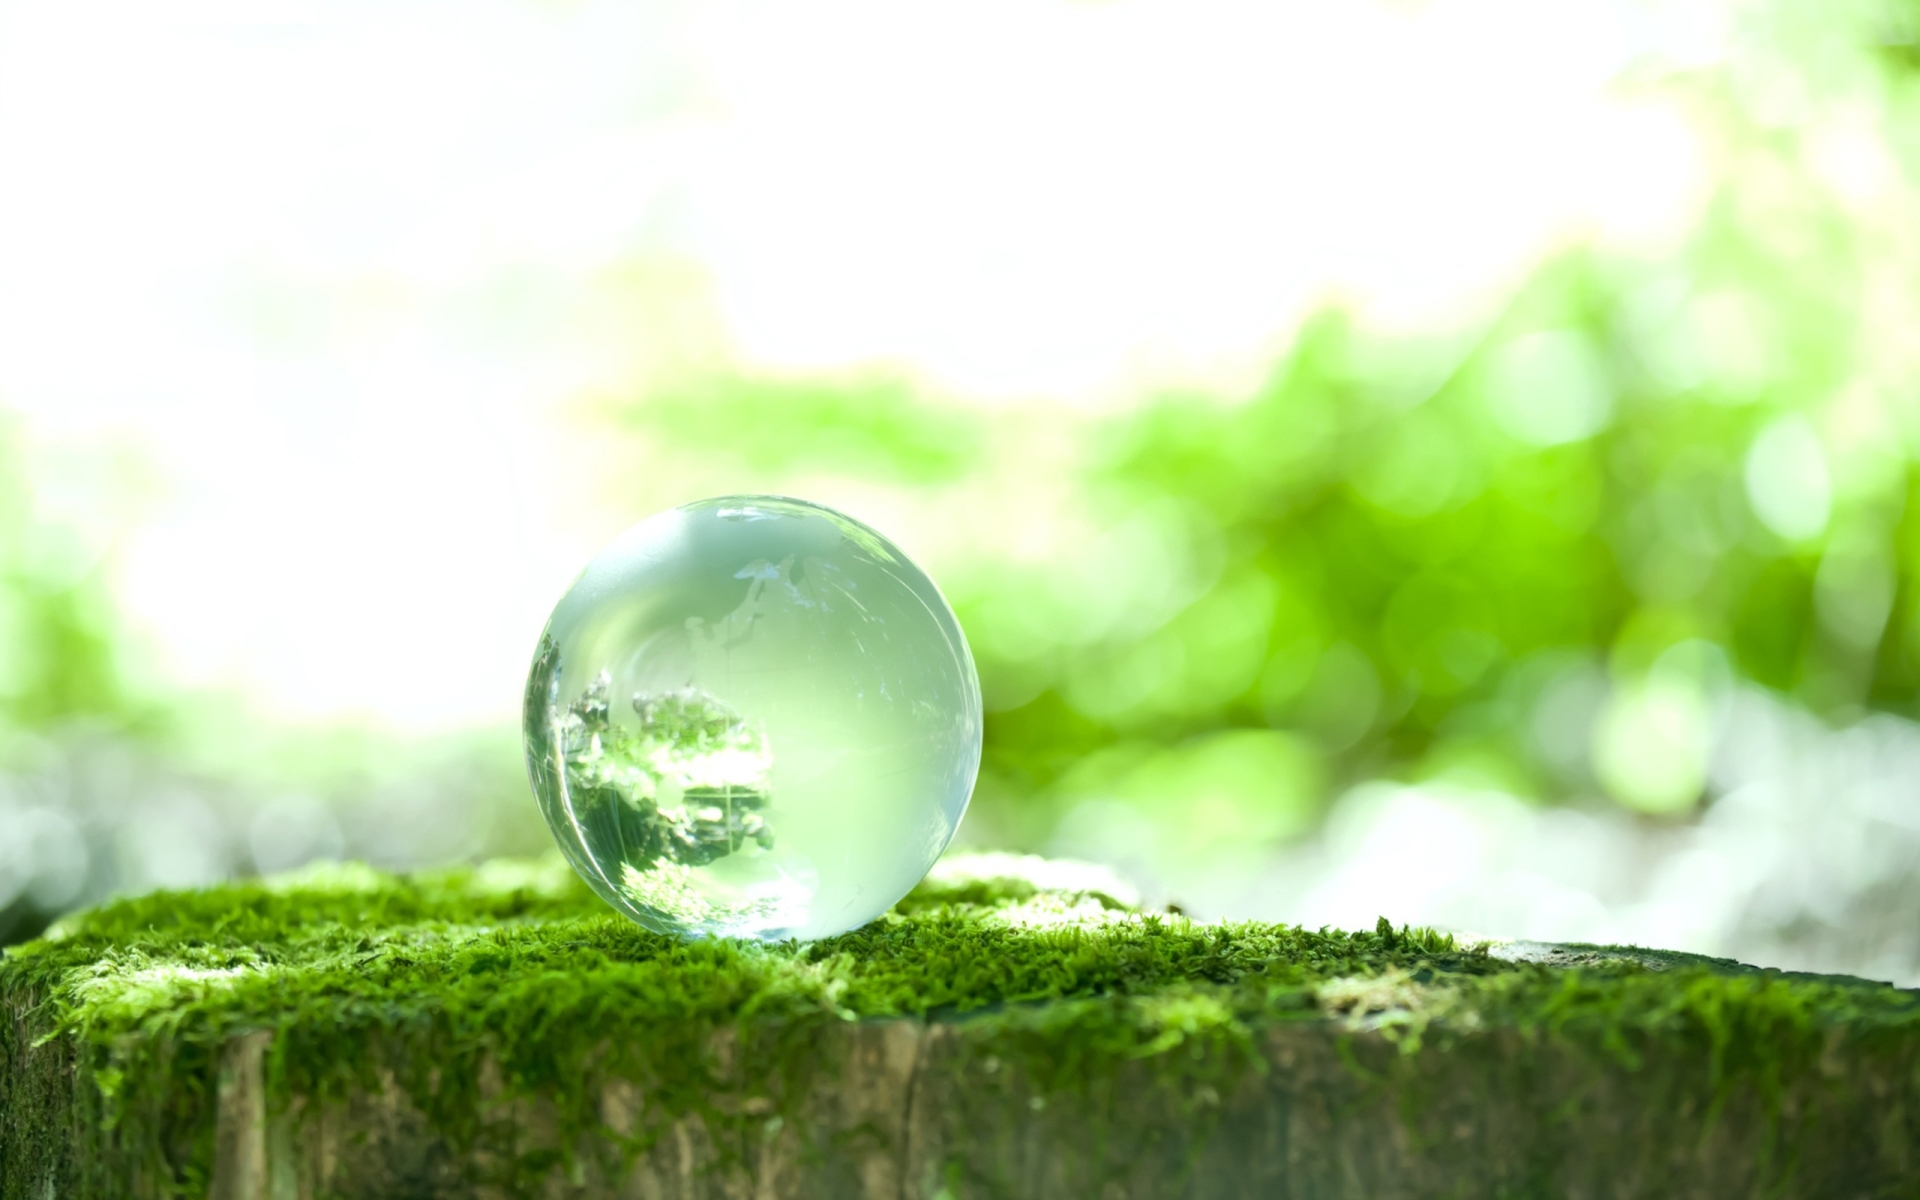 Earth - Spring  - Season - Seasons - Green - Glass - Orb - Sphere - Marble - Moss Wallpaper